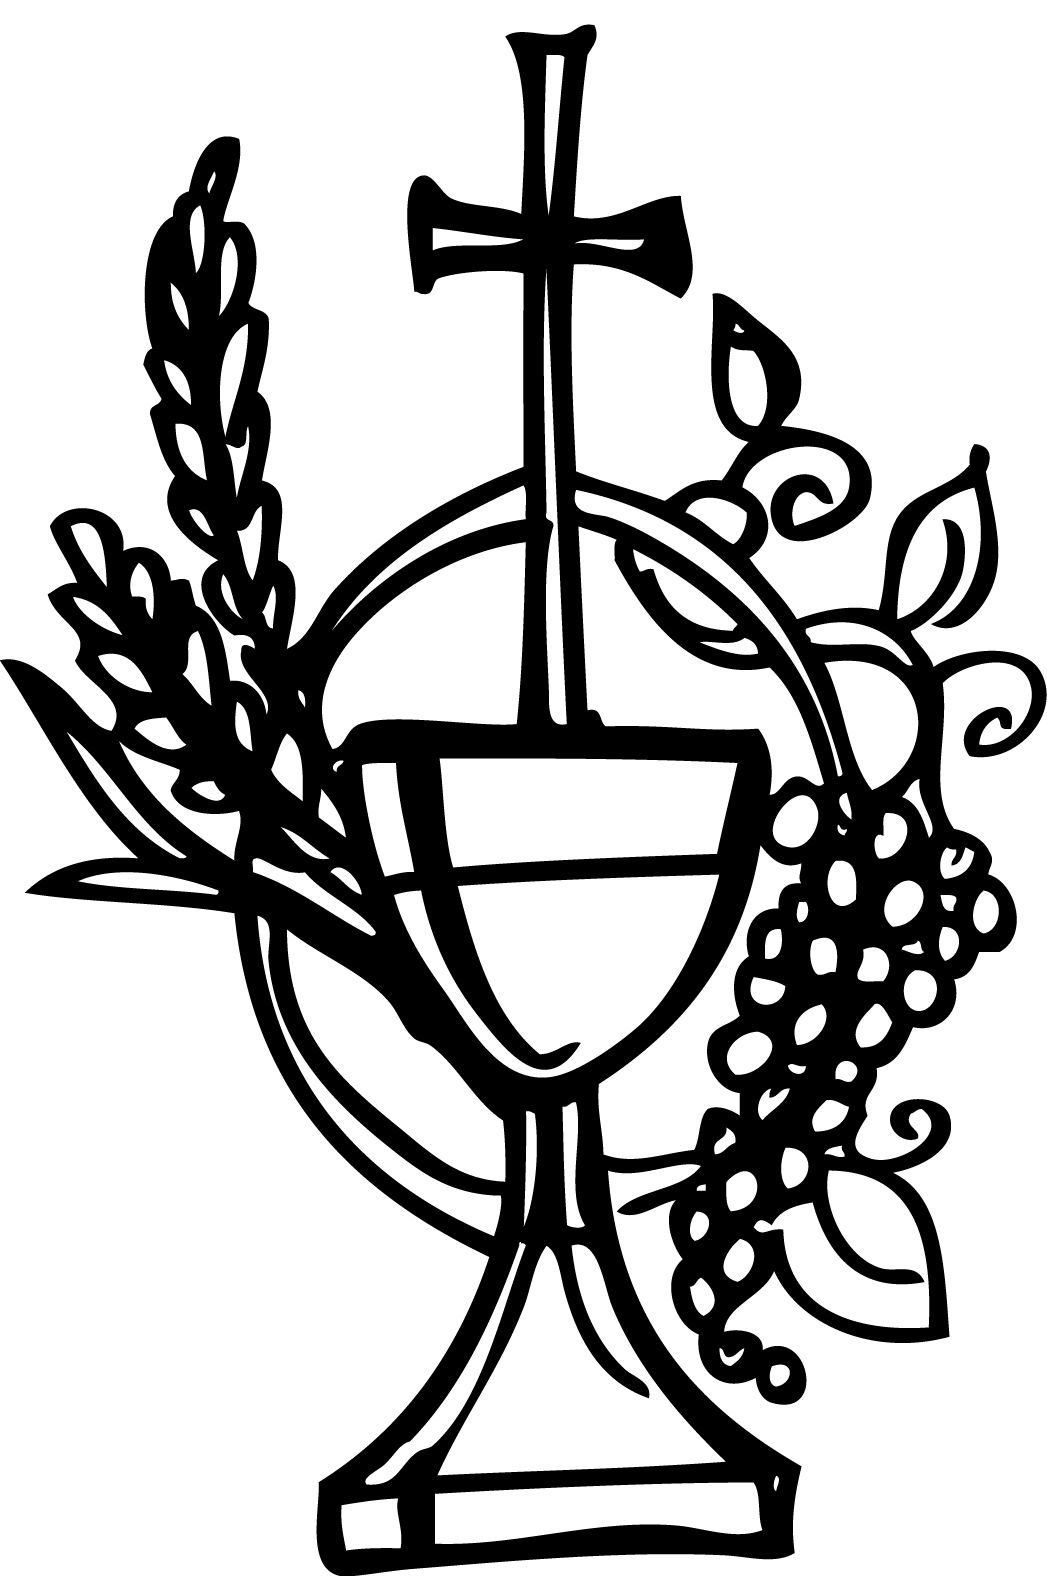 chalice clipart cliparts co communion and advent pinterest rh pinterest com communion chalice clipart chalice clipart black and white